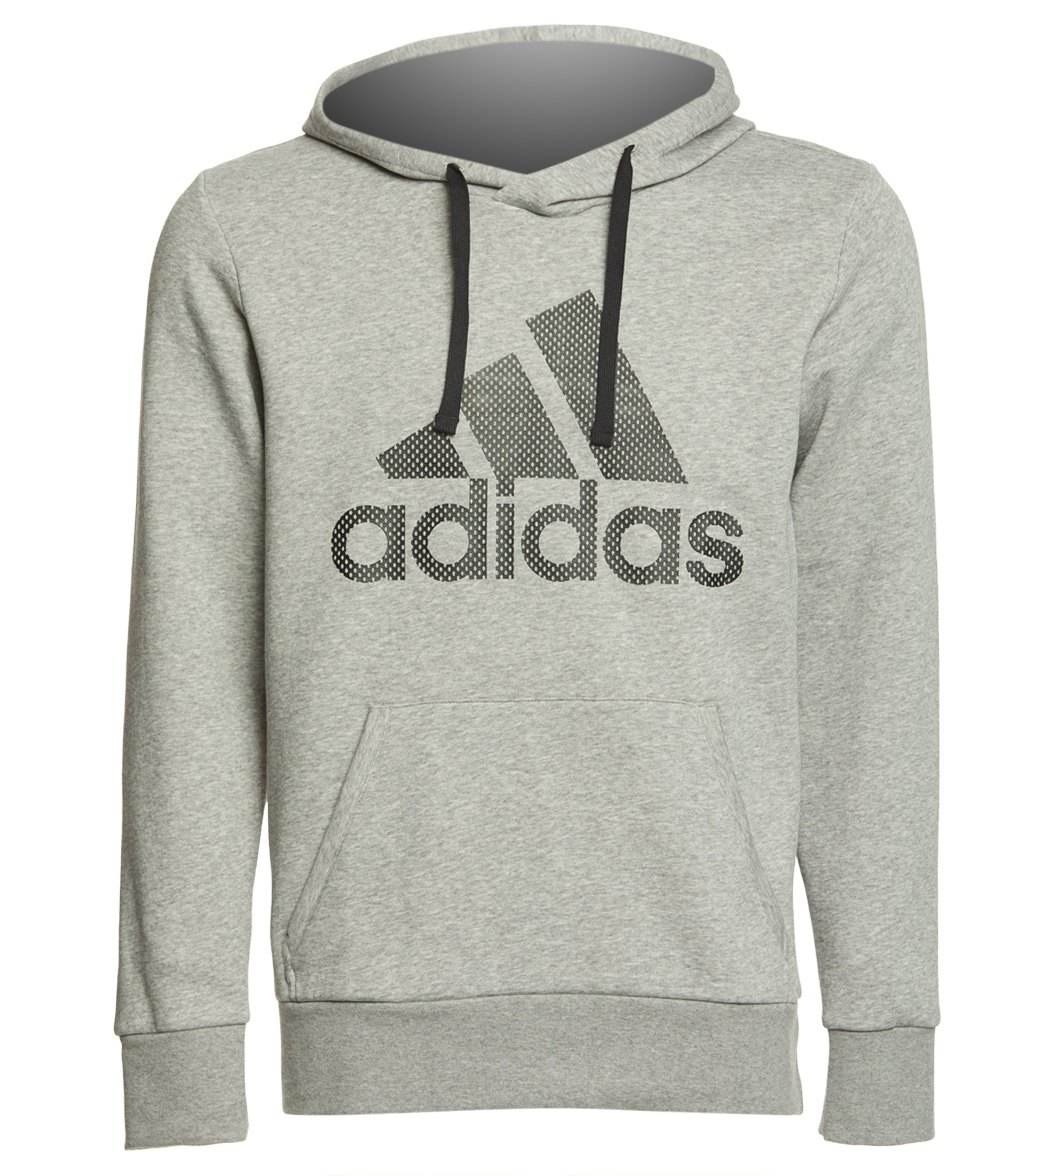 a5ec059656ca2 Adidas Outdoor Men's Essential Cotton Pullover Hoodie Sweatshirt at  SwimOutlet.com - Free Shipping